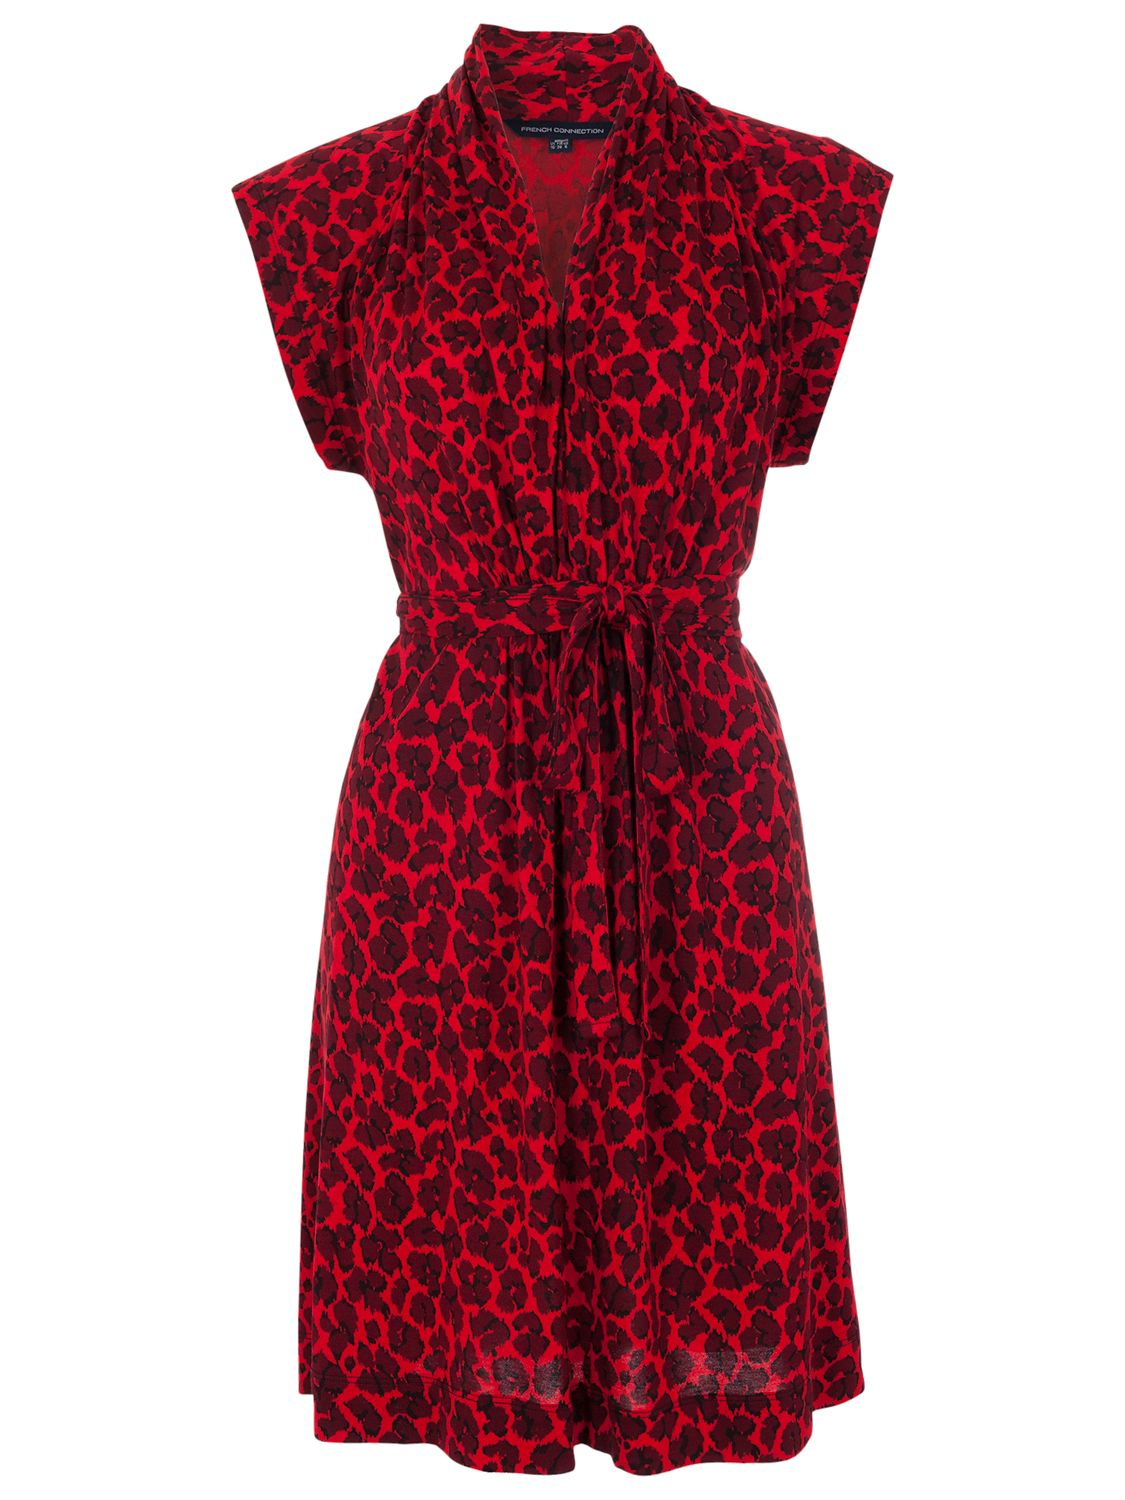 french connection anna jersey tie waist dress red, french, connection, anna, jersey, tie, waist, dress, red, french connection, 16|10|12|14|8|6, women, womens dresses, 1523385